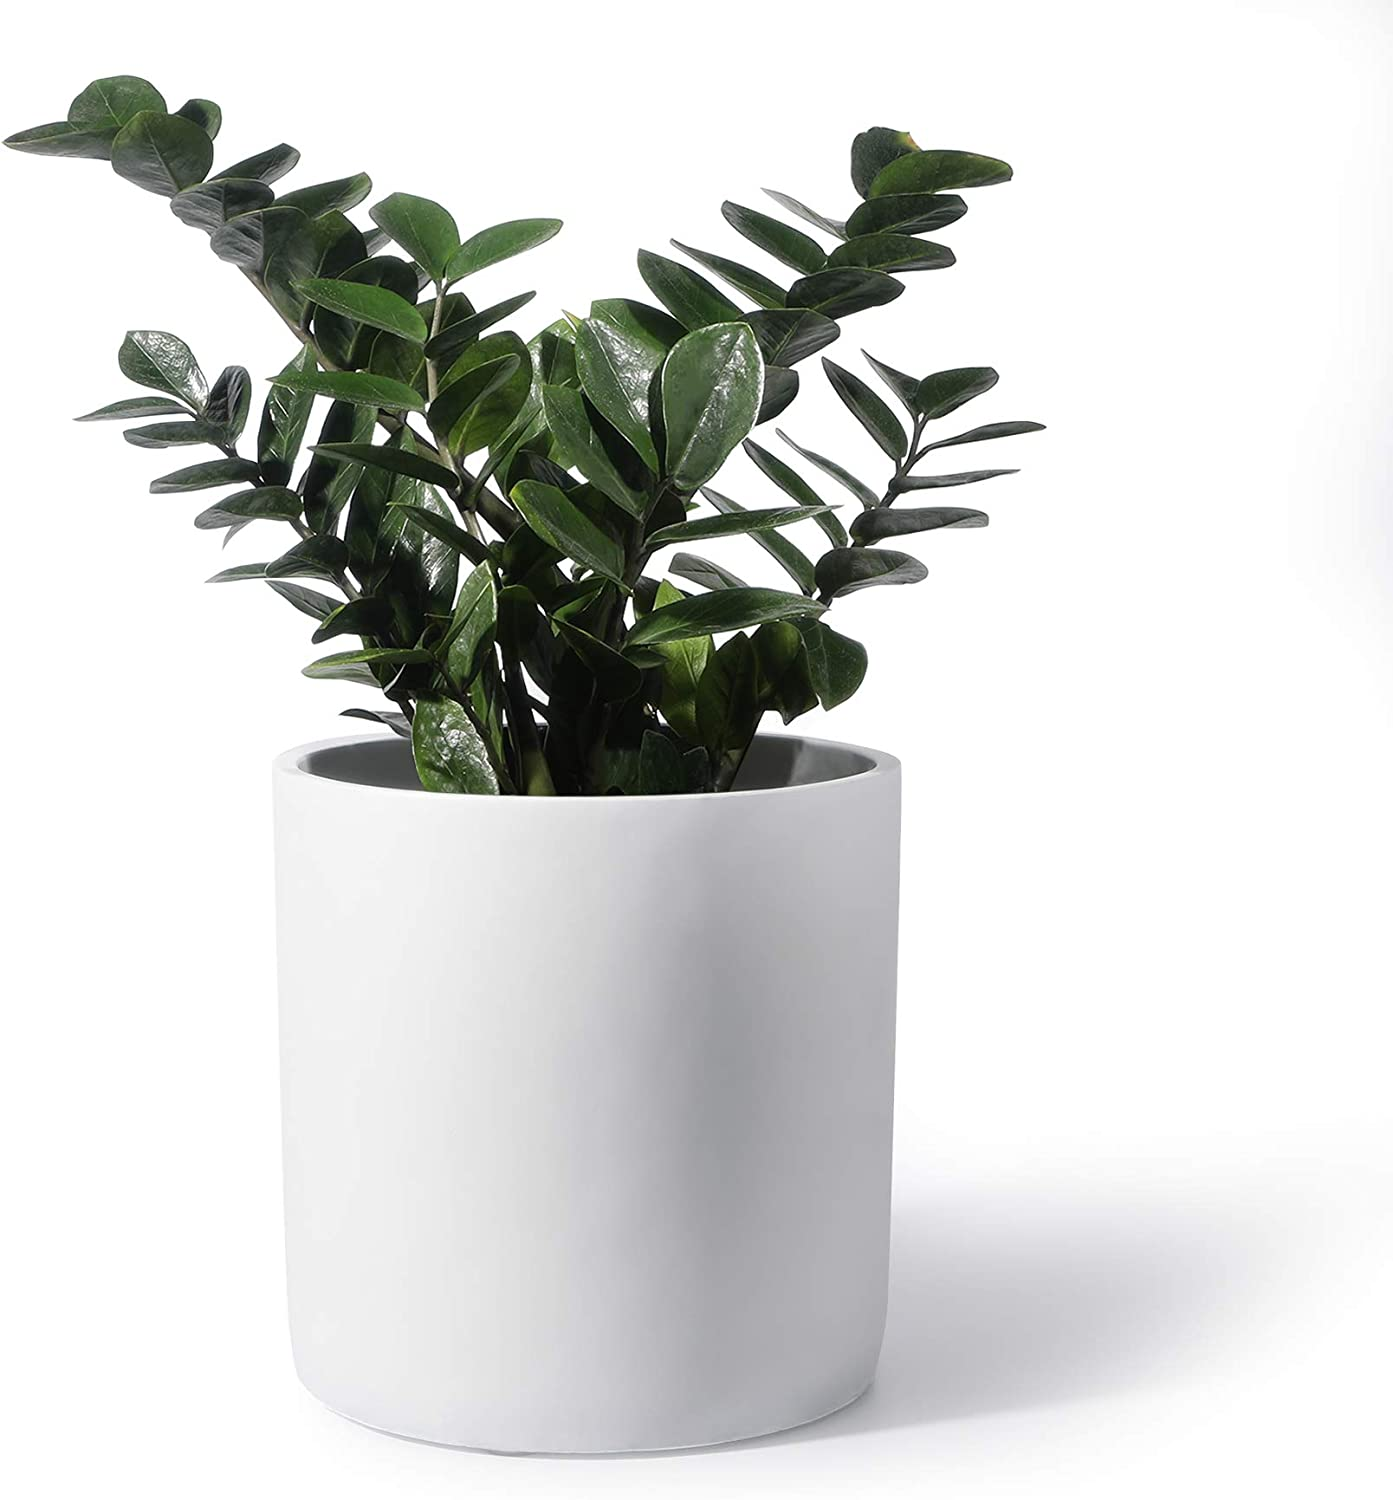 11 Inch Cement Planter Pot - Large Planter Pots for Plants Outdoor, Home Decor, Office & Indoor, Modern Cylinder Container with Watering Drainage (Plants NOT Included)